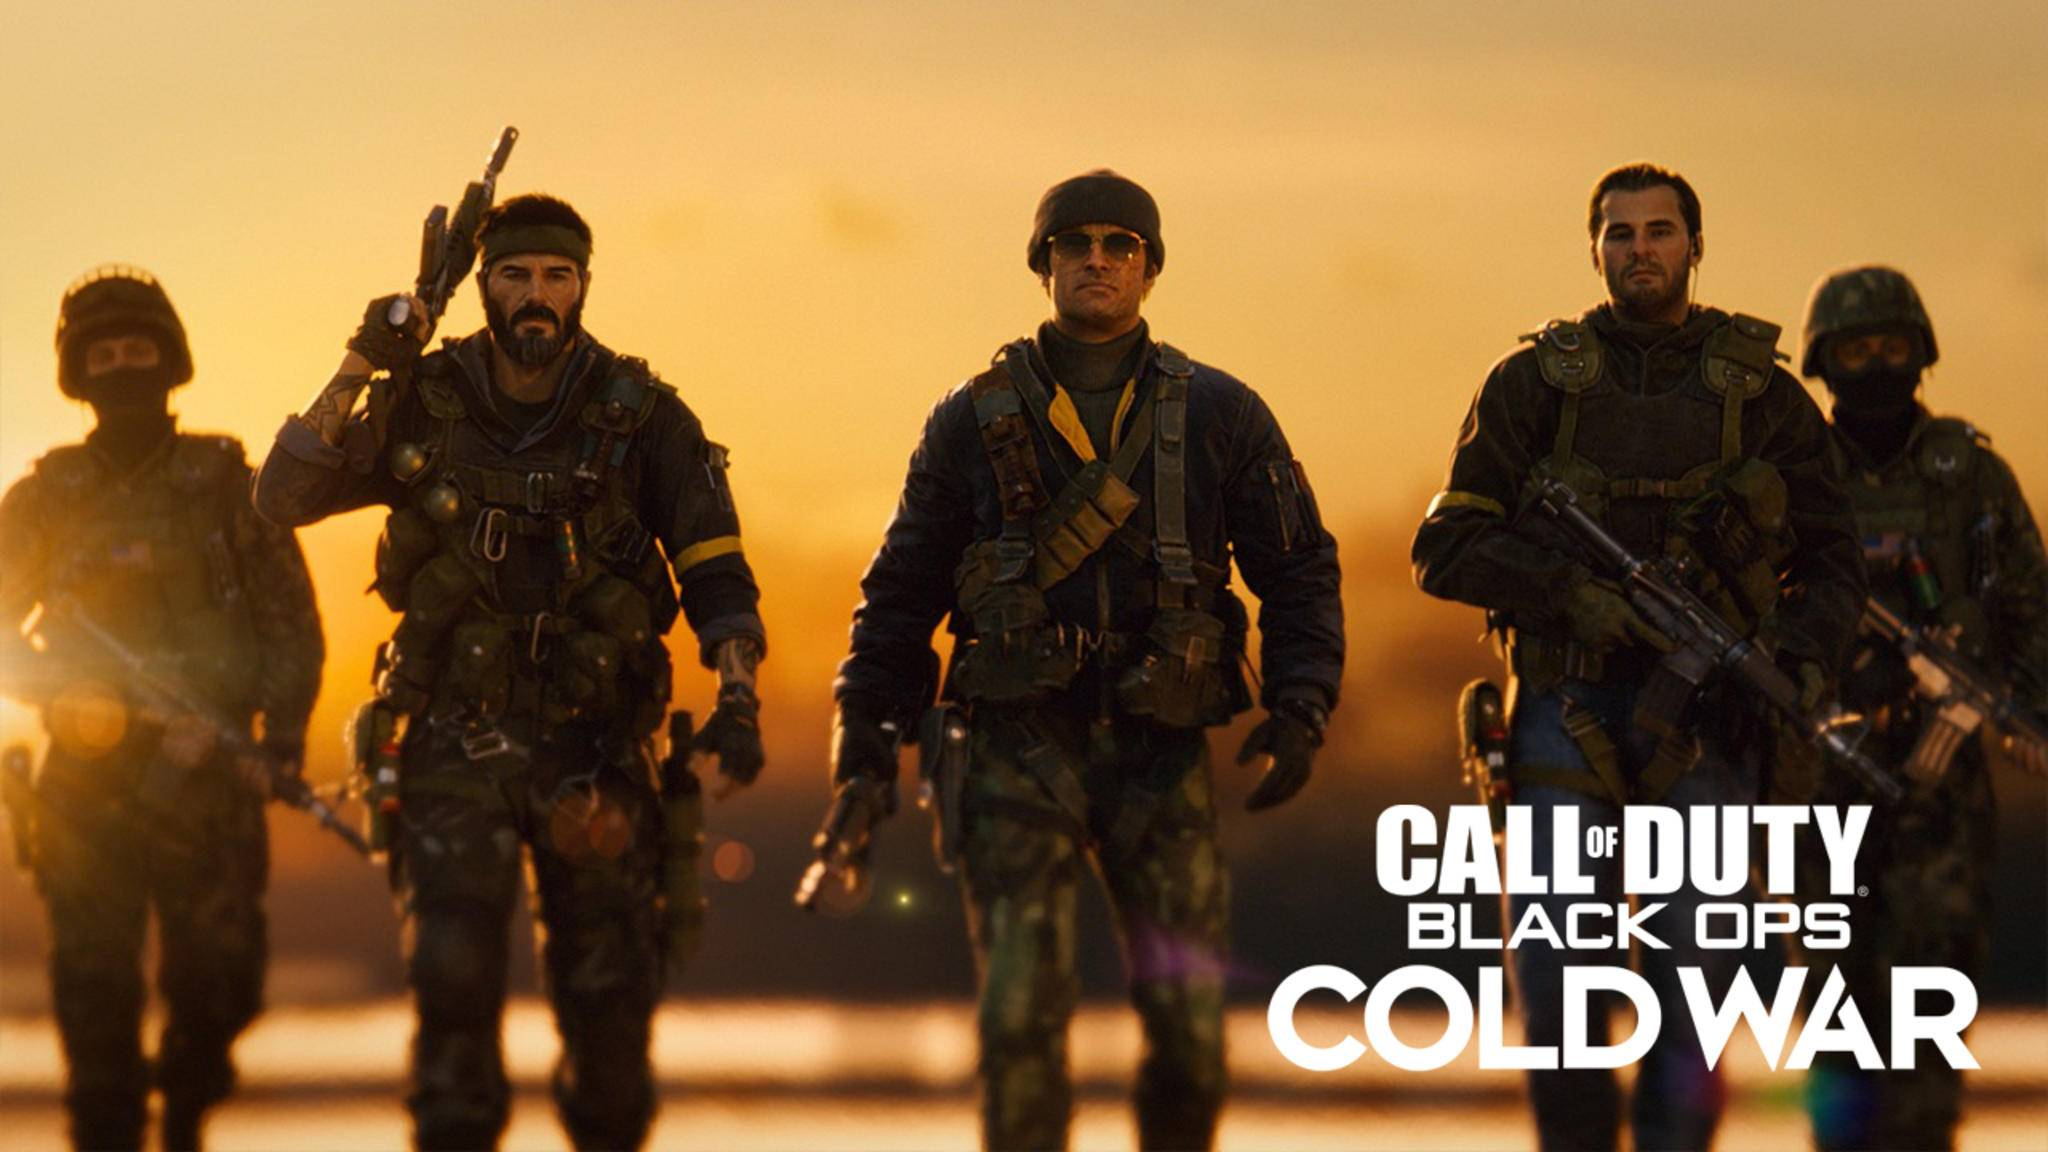 call-of-duty-black-ops-cold-war-release-trailer-thumbnail